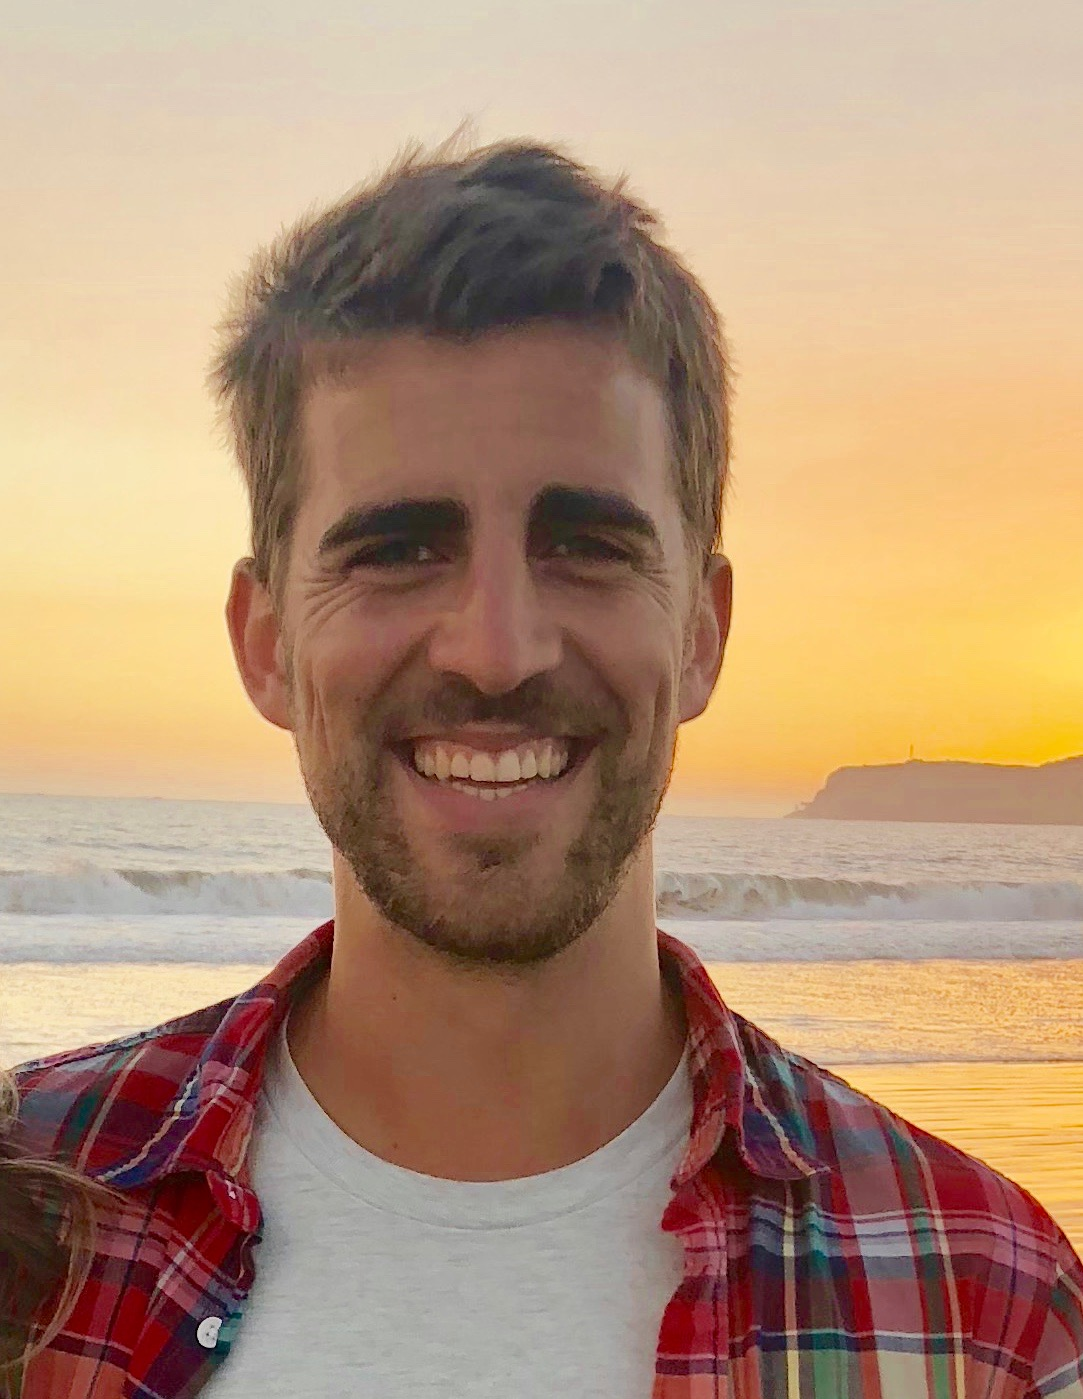 Asís Loustau - Originally from Madrid, Spain, Asís moved to Corpus Christi, TX in 2016 to work as a civil engineer. While living there, he discovered his passion for Acro Yoga. His life changed radically when he met Becca in San Diego, during an Acro Yoga meetup -a.k.a Acro Jam. The rest is history!